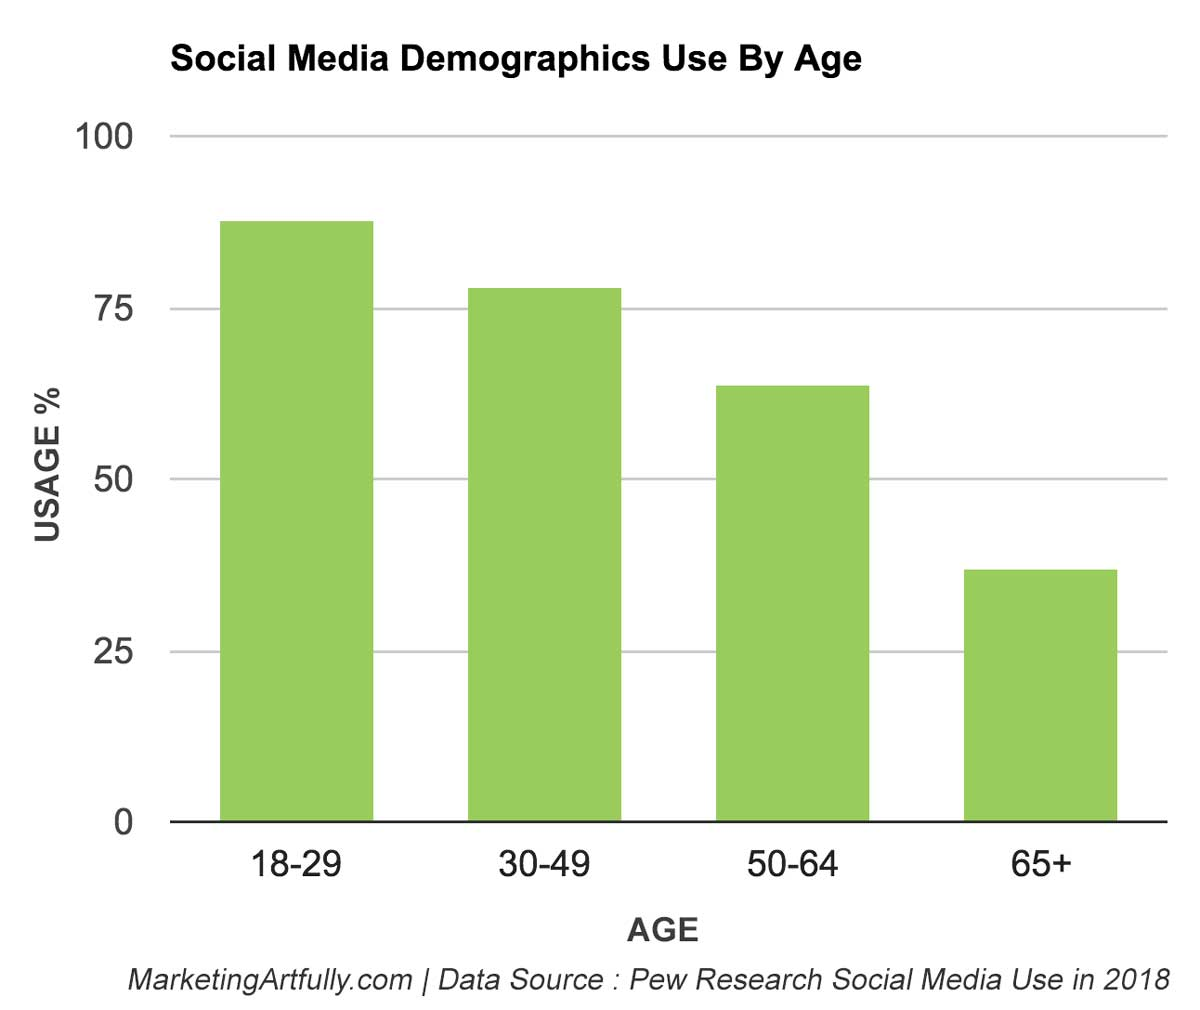 Social Media Demographics By Age Range